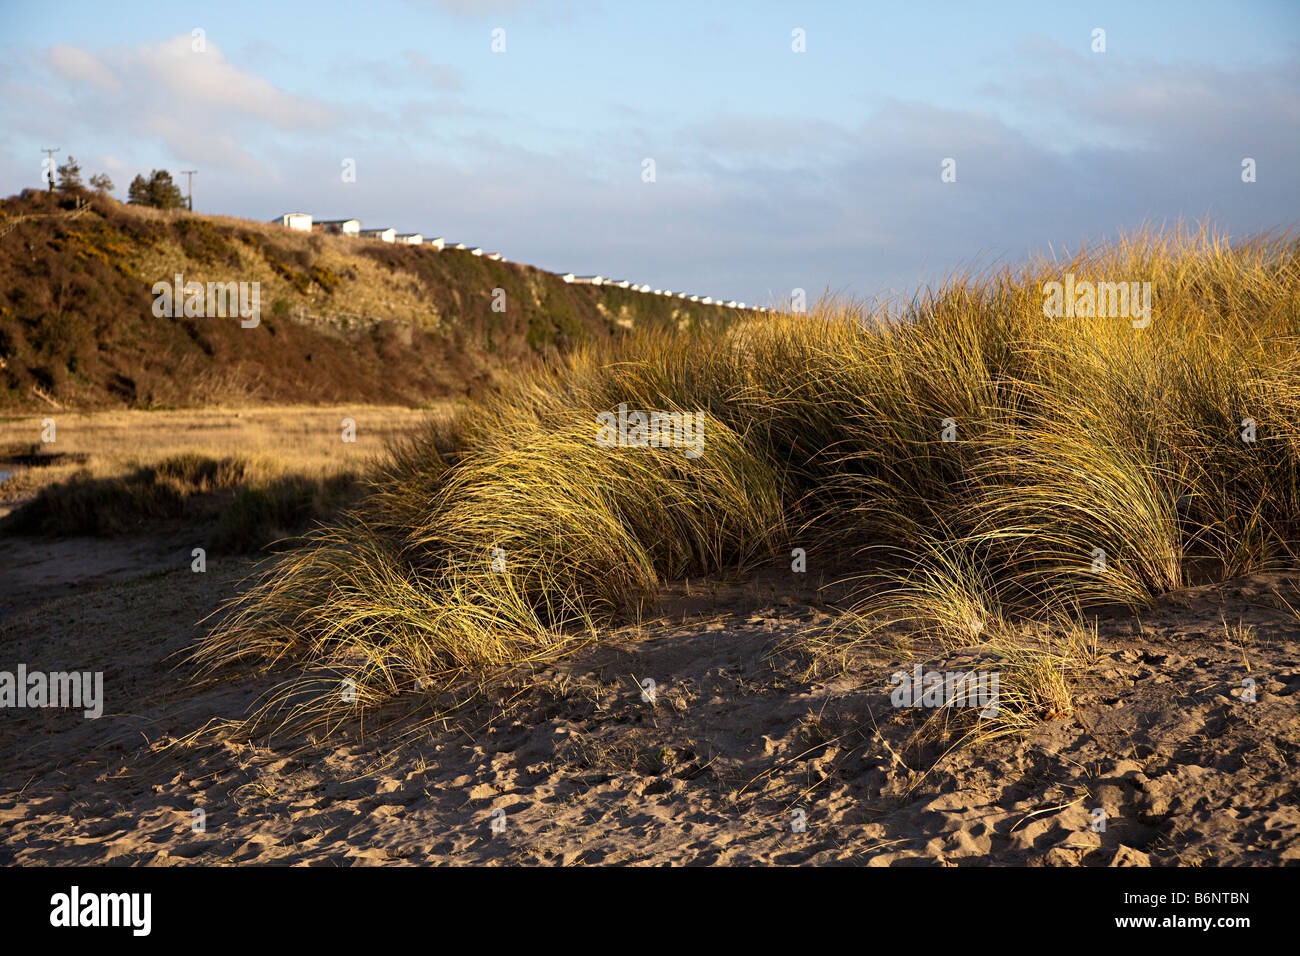 Marram grass Ammophilia arenaria on dunes near Aberthaw with holiday caravans on cliff edge Wales UK - Stock Image